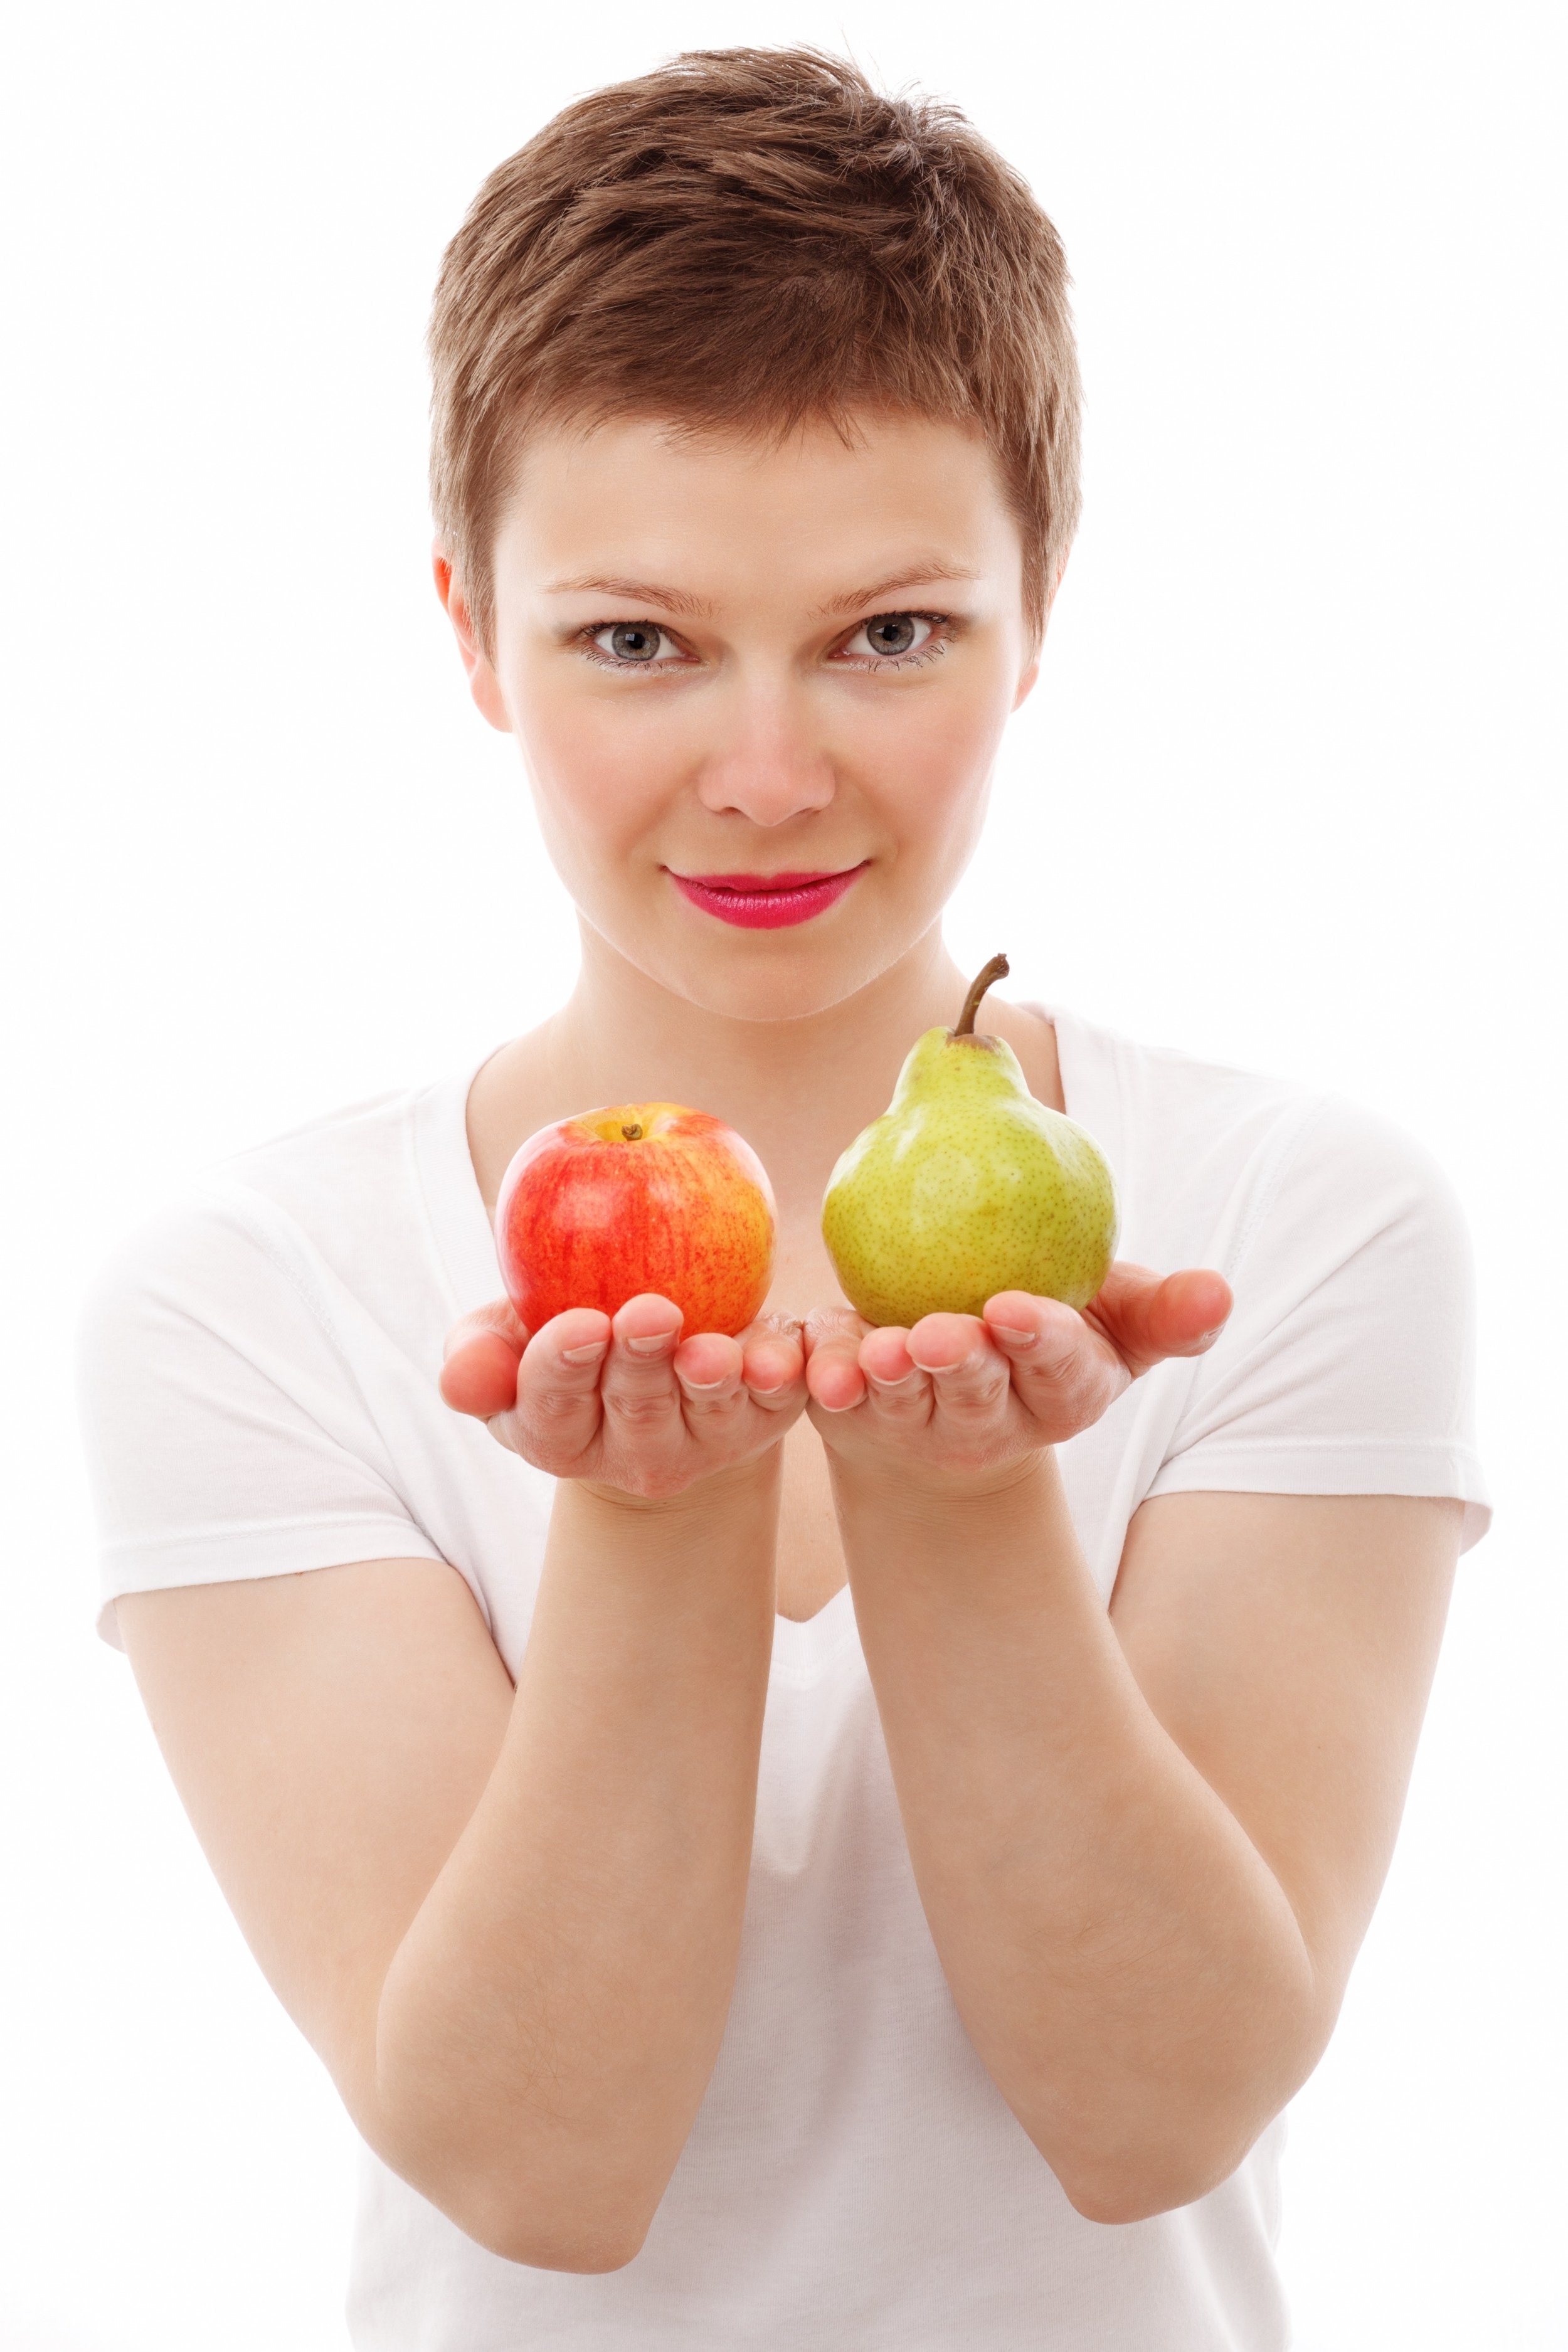 Let's write a blog about comparing apples to apples and have a picture showing apples and pears.